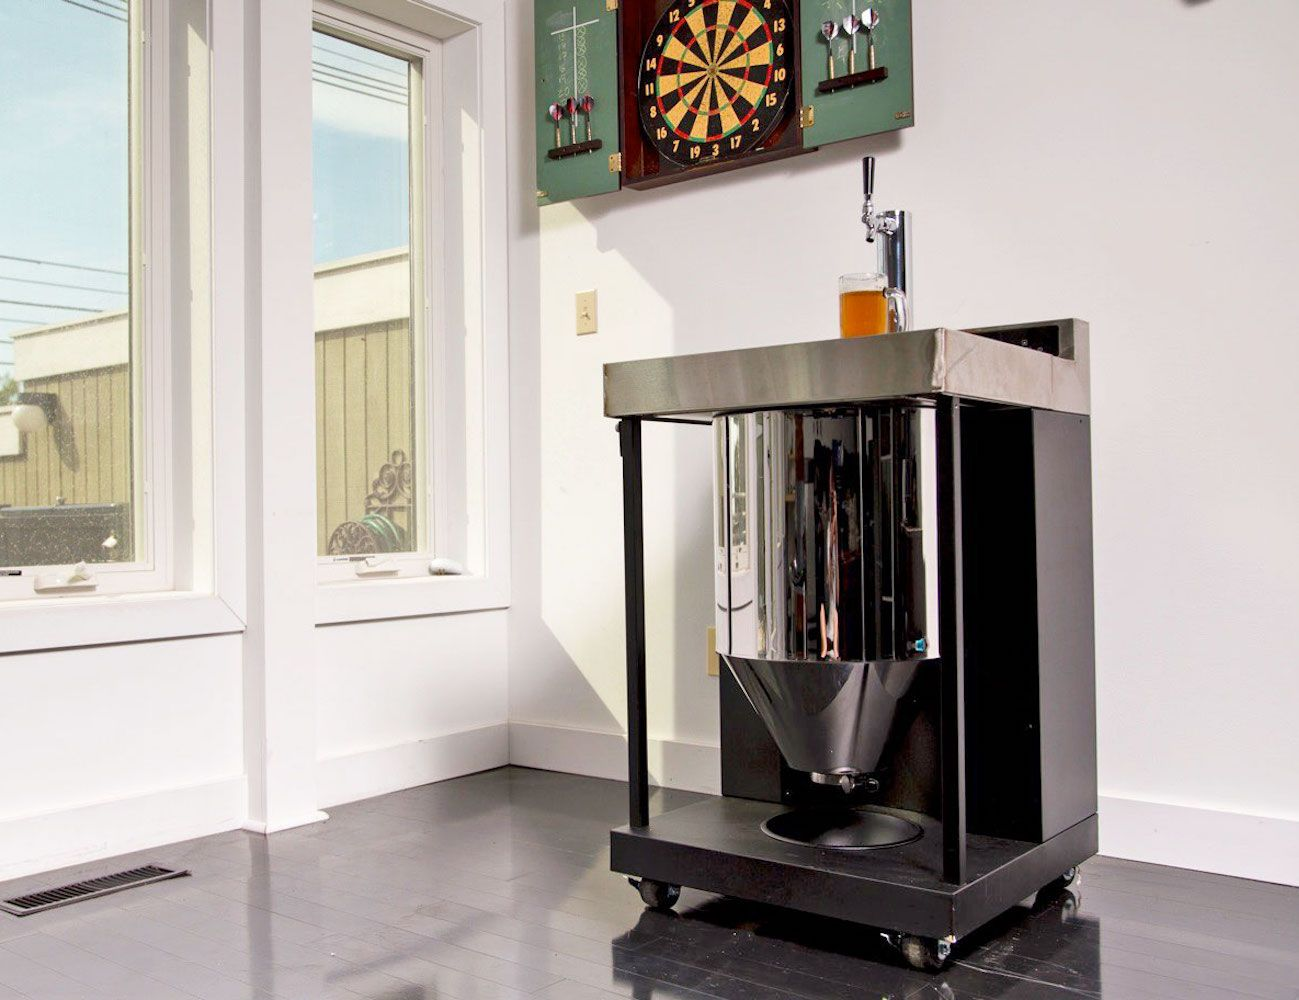 Getting the perfect brew right at home is now possible with the Vessi Fermentor Home Beer Brewing System.